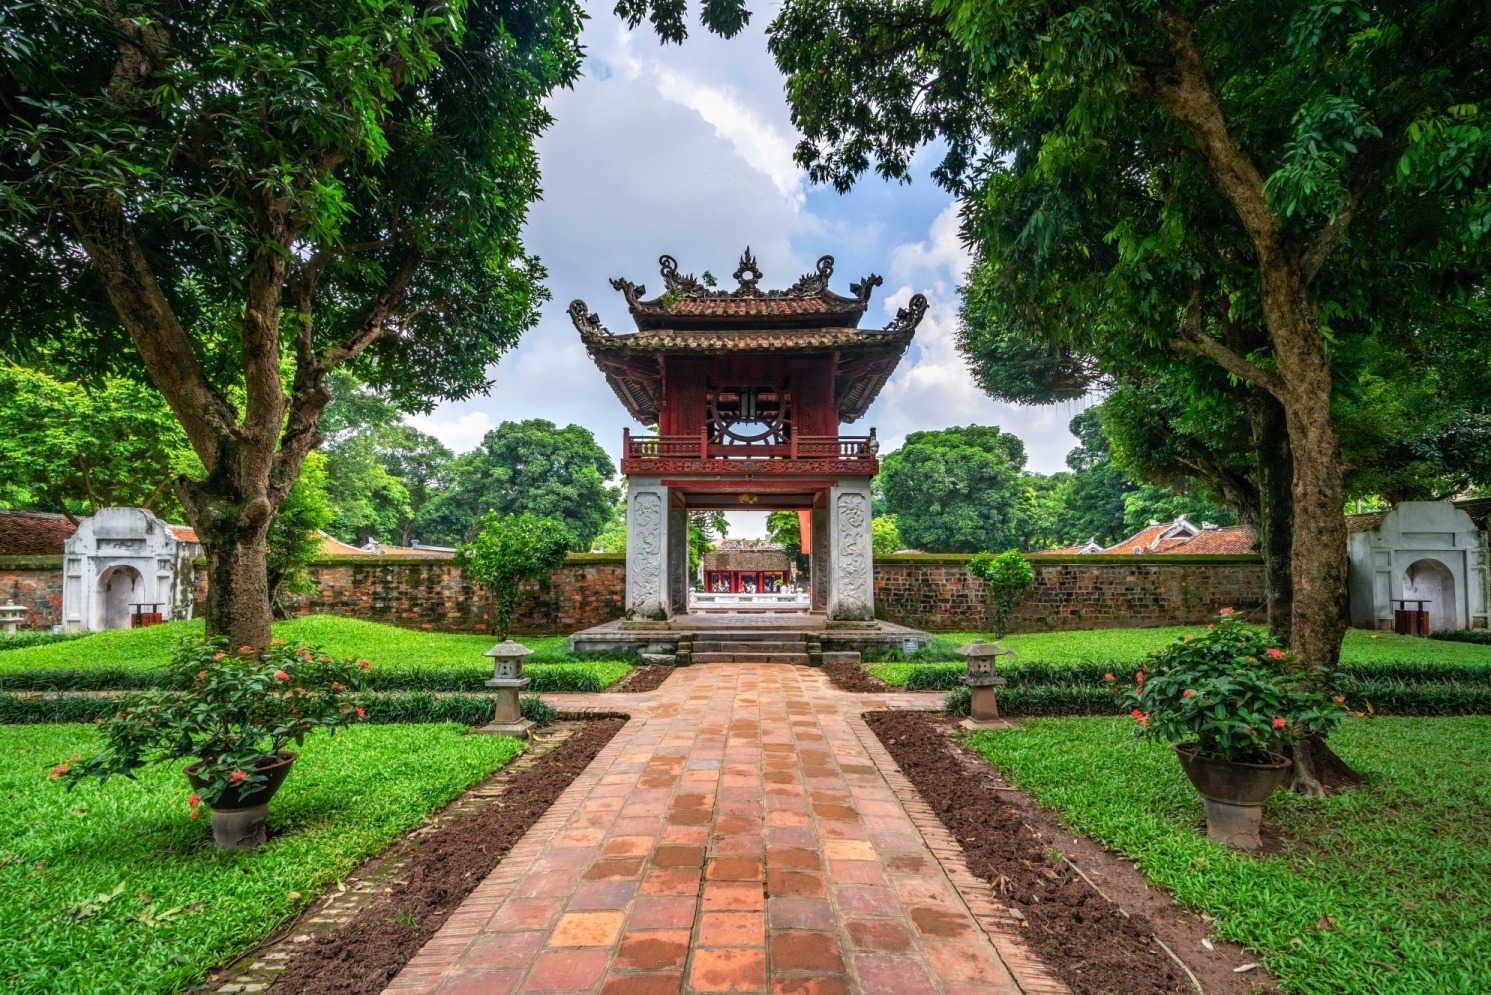 temple of literature, best historical place in Hanoi